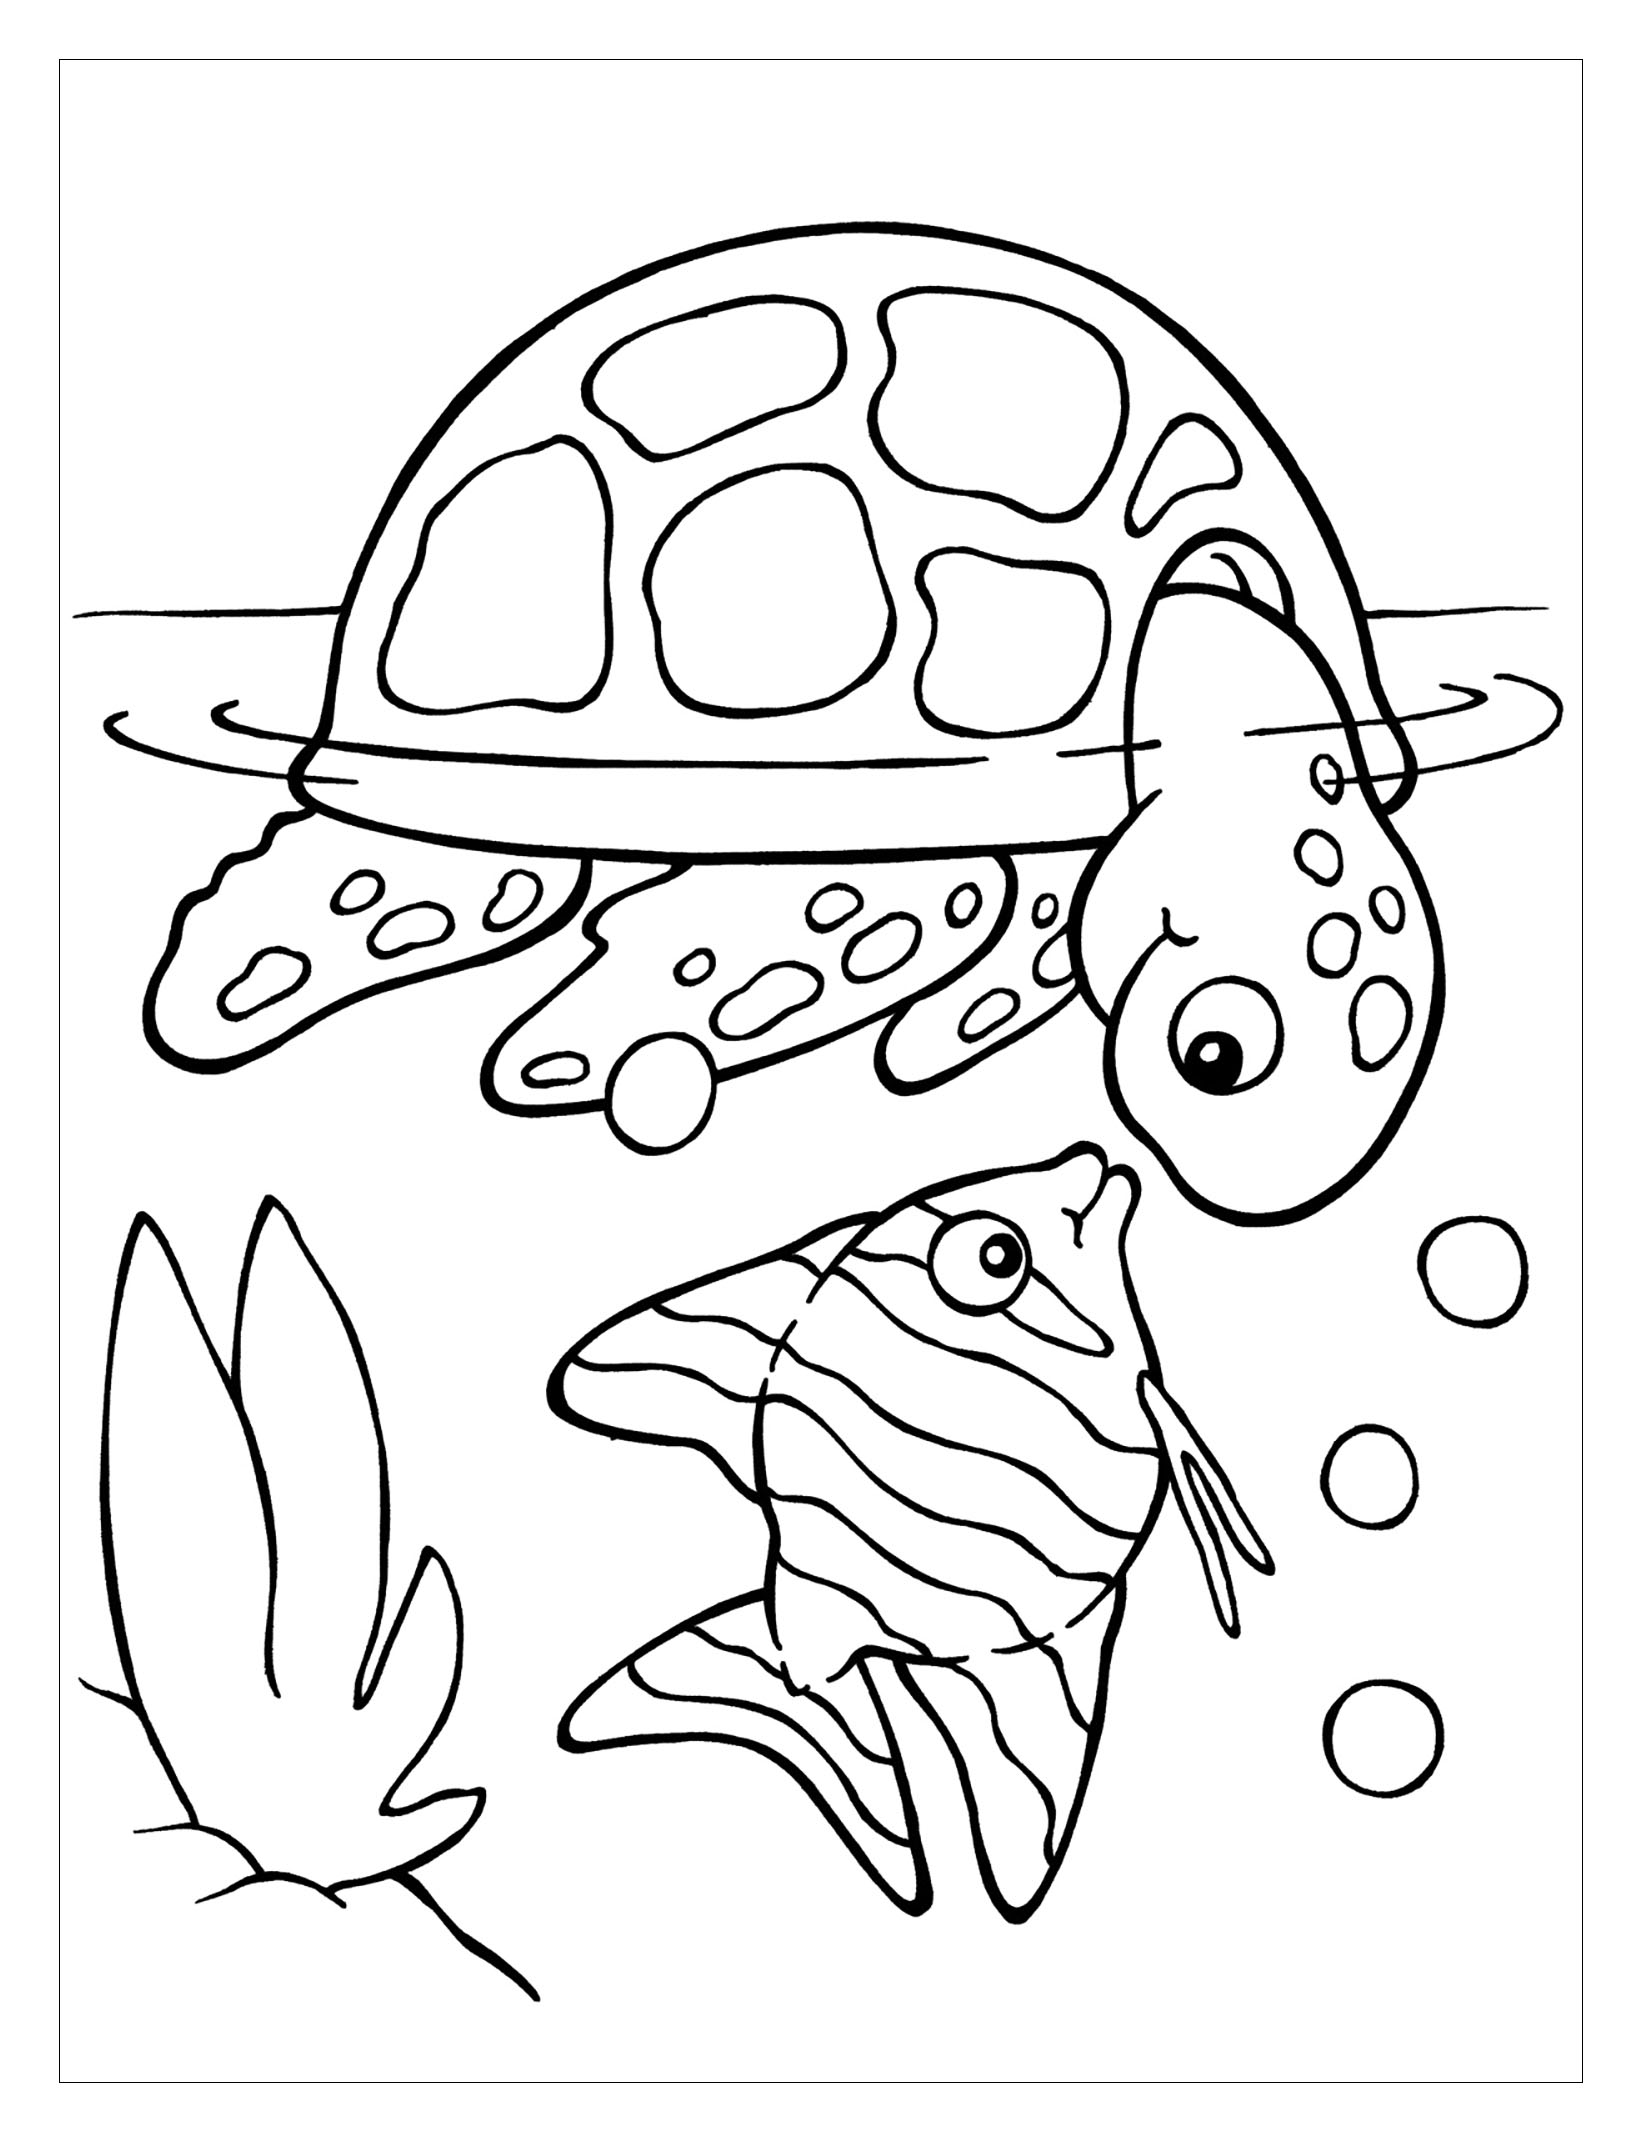 coloring for kids easy exotic frog coloring page to print or download for fkids coloring for easy kids